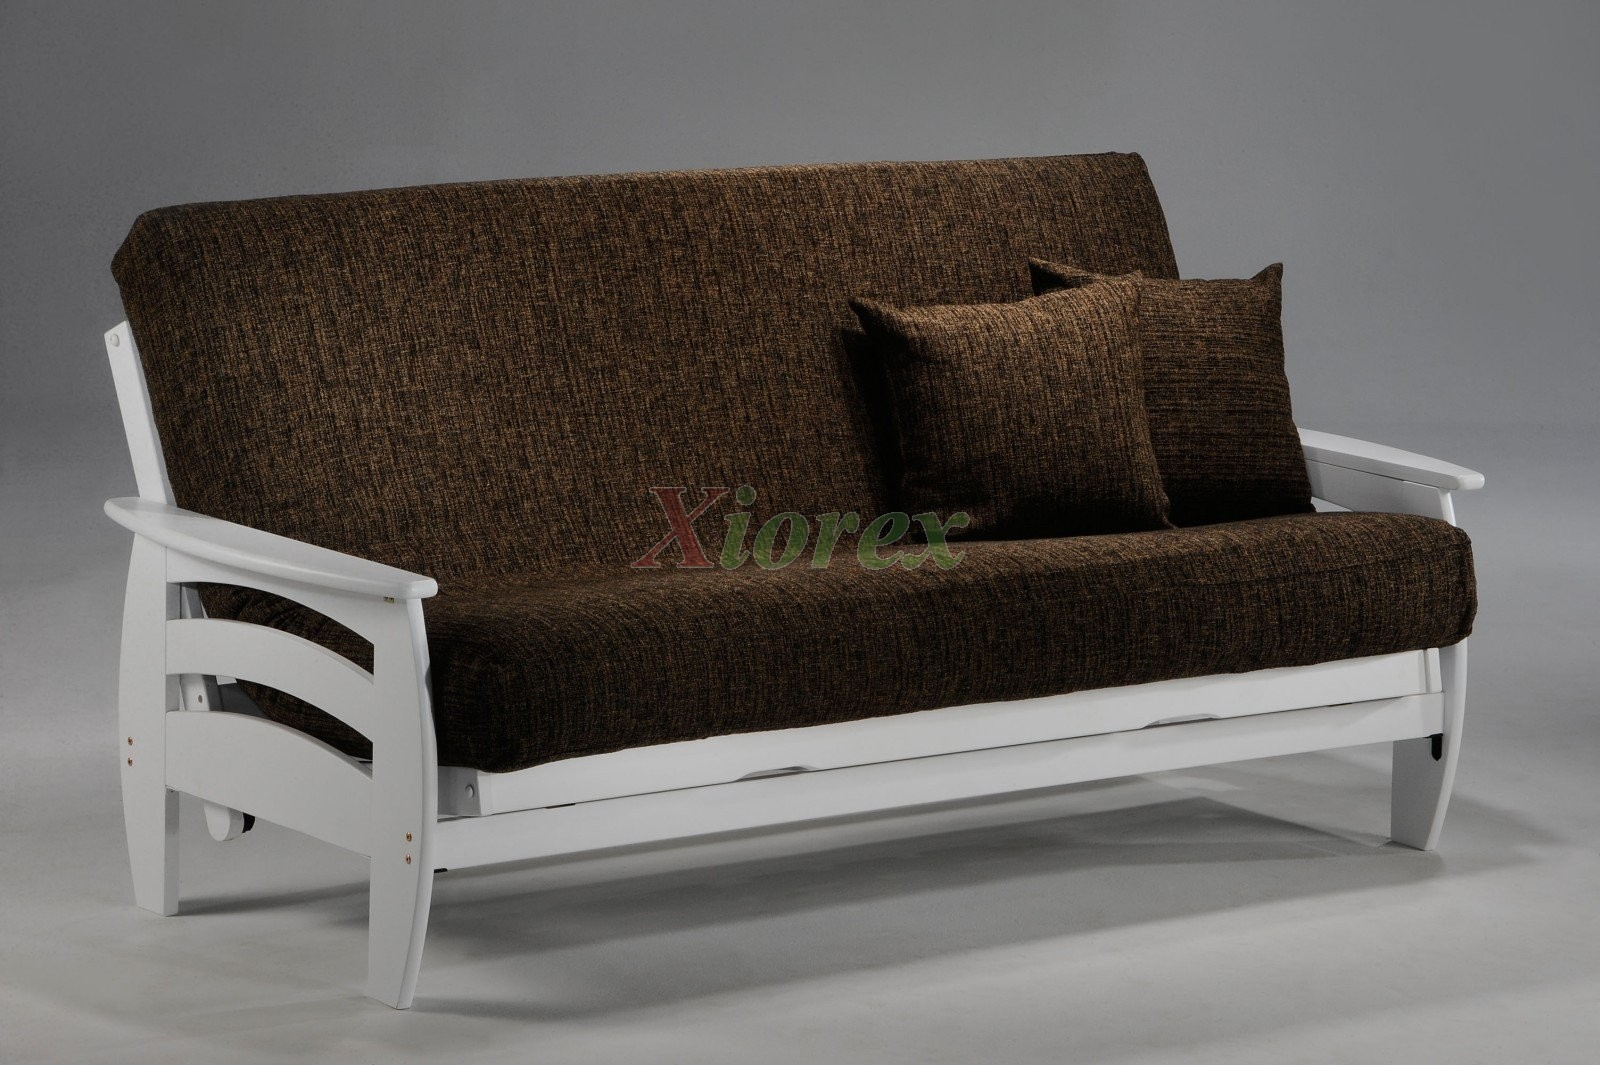 White Futon Couch Night And Day Corona Frame Xiorex